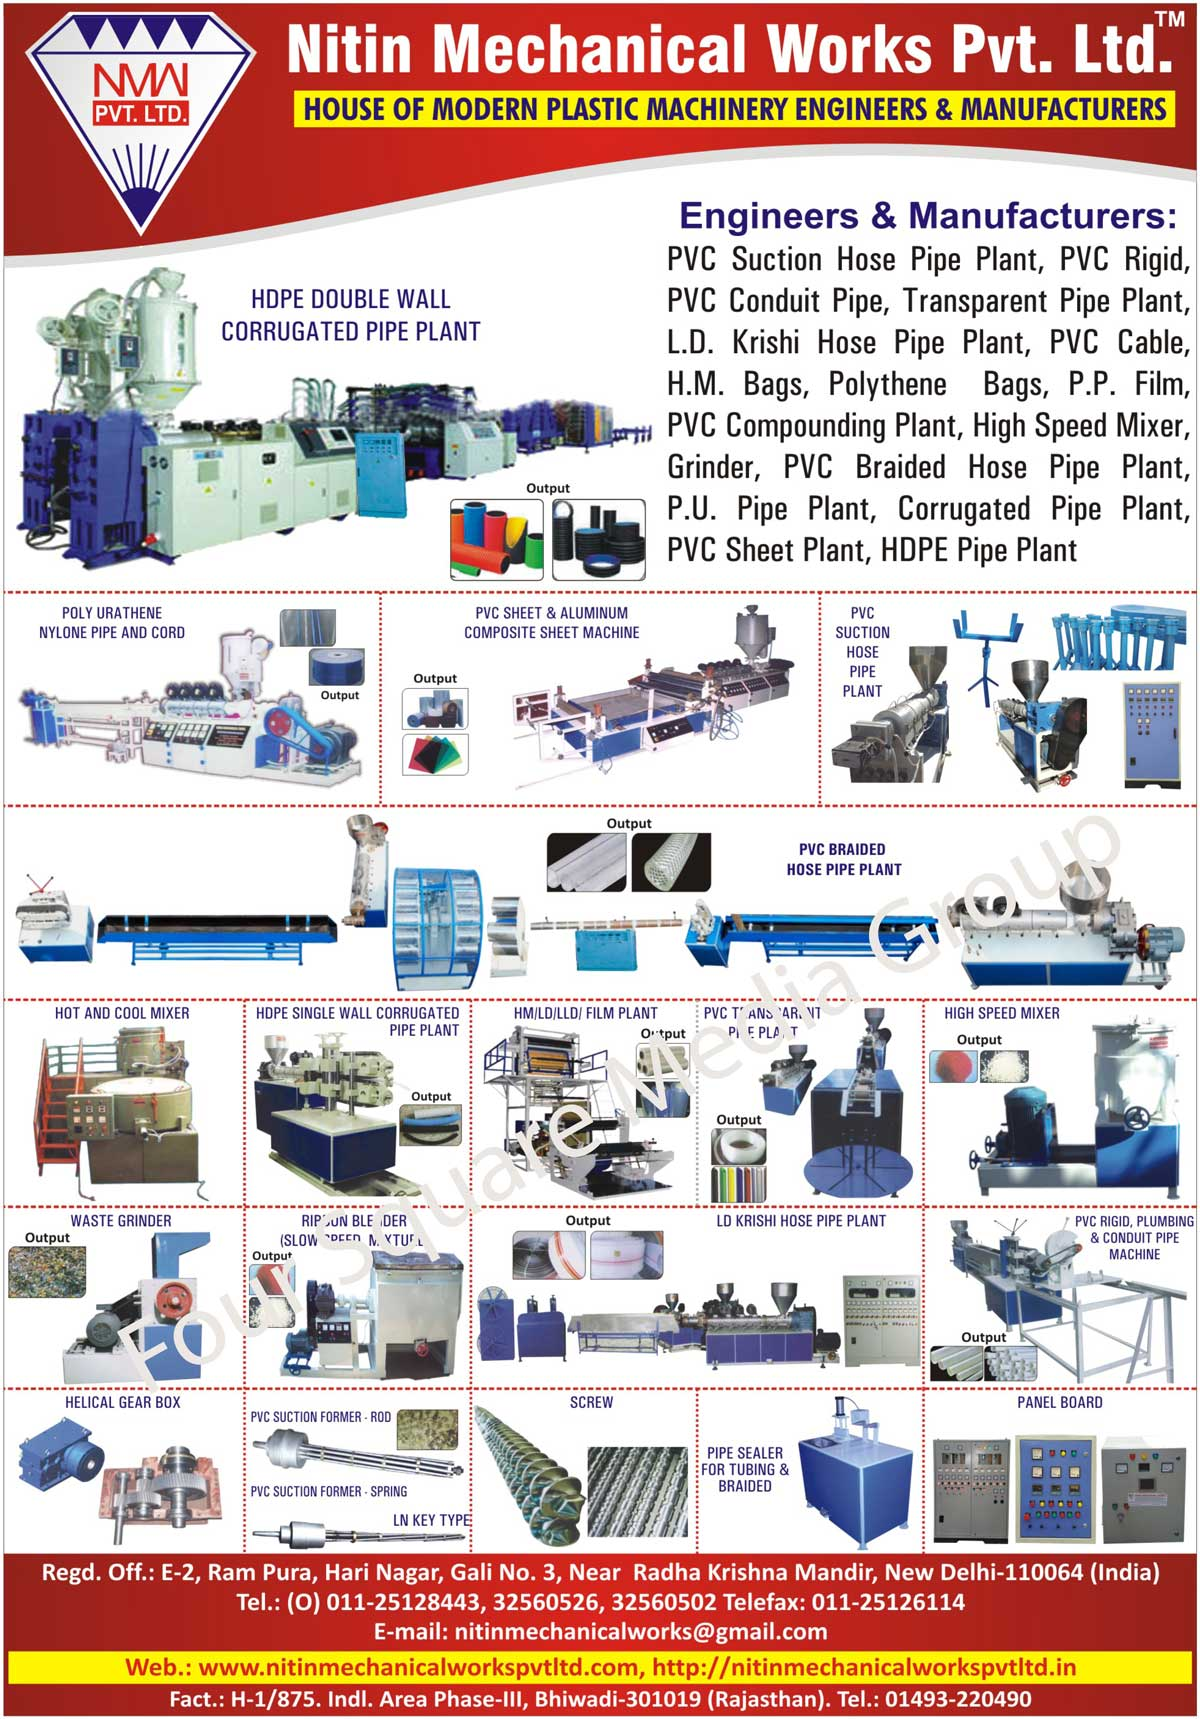 Plastic Machines, PVC Suction Hose Pipe Plants, PVC Rigid Pipe Plants, PVC Conduit Pipes,  Plants, Transparent Pipe Plants, LD Krishi Hose Pipe Plants, LD Agricultural Pipe Plants, PVC Cable Plants, HM Bag Plants, Polythene Bag Plants, PP Film Plants, PVC Compounding Plants, High Speed Mixers, Plastic Grinders, PVC Braided Hose Pipe Plants, PU Pipe Plants, Corrugated Pipe Plants, PVC Sheet Plants, HDPE Pipe Plants, HDPE Double Wall Corrugated Pipe Plants, Aluminium Composite Sheet Machines, Hot and Cool Mixers, HDPE Single Wall Corrugated Pipe Plants, HM Film Plants, LD Film Plants, LLD Film Plants, PVC Transparent Pipe Plants, Waste Grinders, Scrap Grinders, Slow Speed Mixture, Ribbon Blenders, PVC Rigid Pipe Machines, Plumbing Pipe Machines, Conduit Pipe Machines, Helical Gear Boxes, ROD PVC Suction Formers, Spring LN Key Type PVC Suction Formers, Screws, Pipe Sealer For Tubings, Pipe Sealer For Braided, Panel Boards, PVC Sheet Composite Sheet Machines, Poly Urathene Nylone Pipe, Poly Urathene Nylone Cord, Conduit Pipe Machines